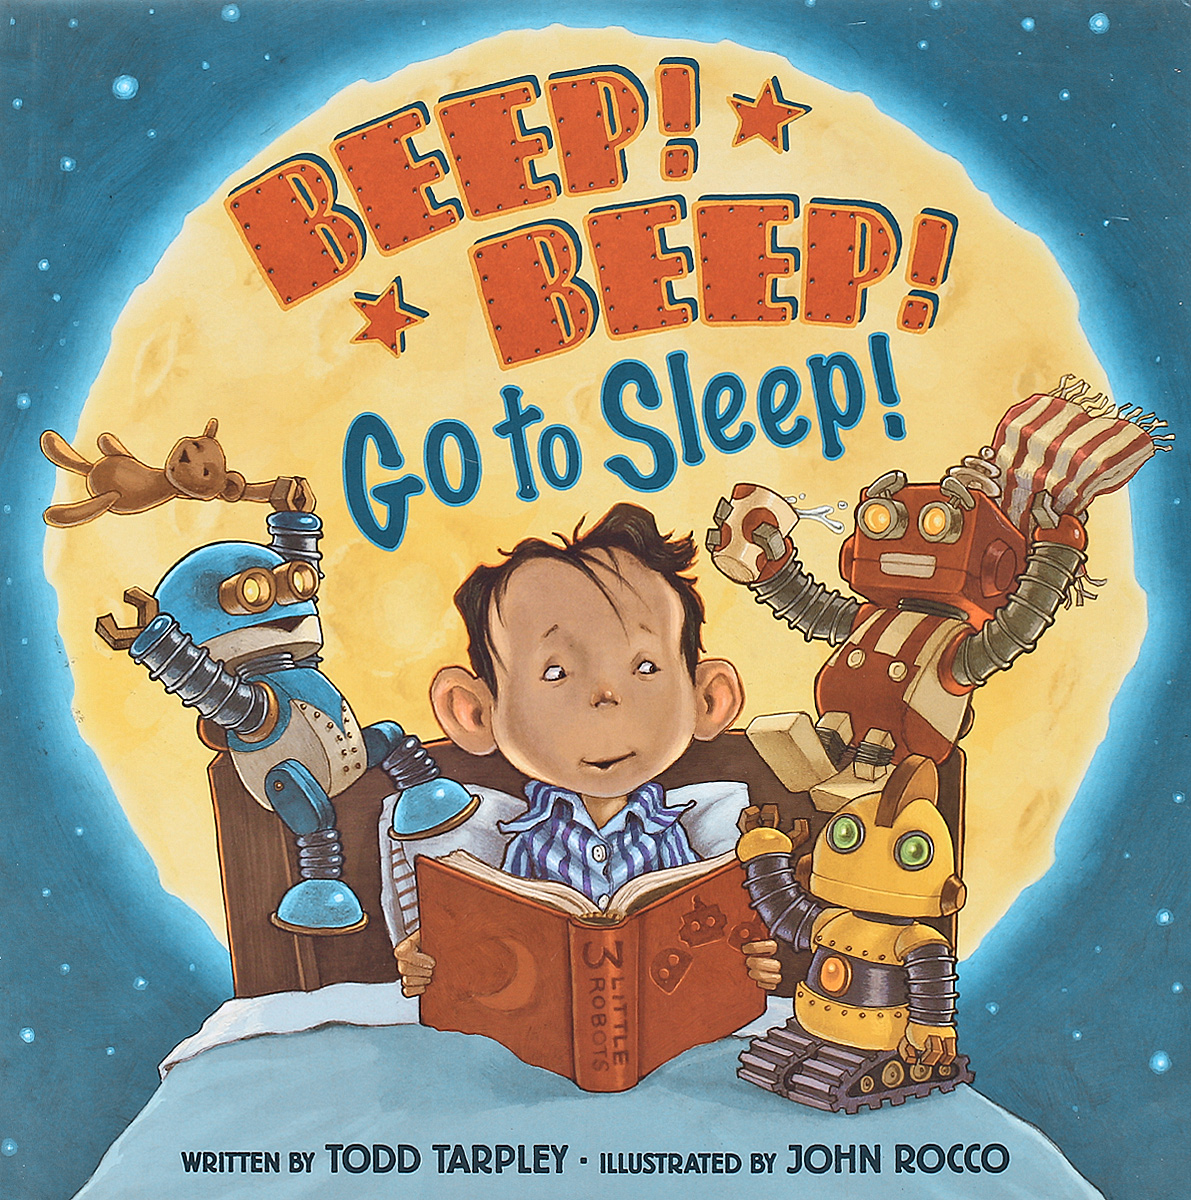 Beep! Beep! Go to Sleep! beep beep go to sleep